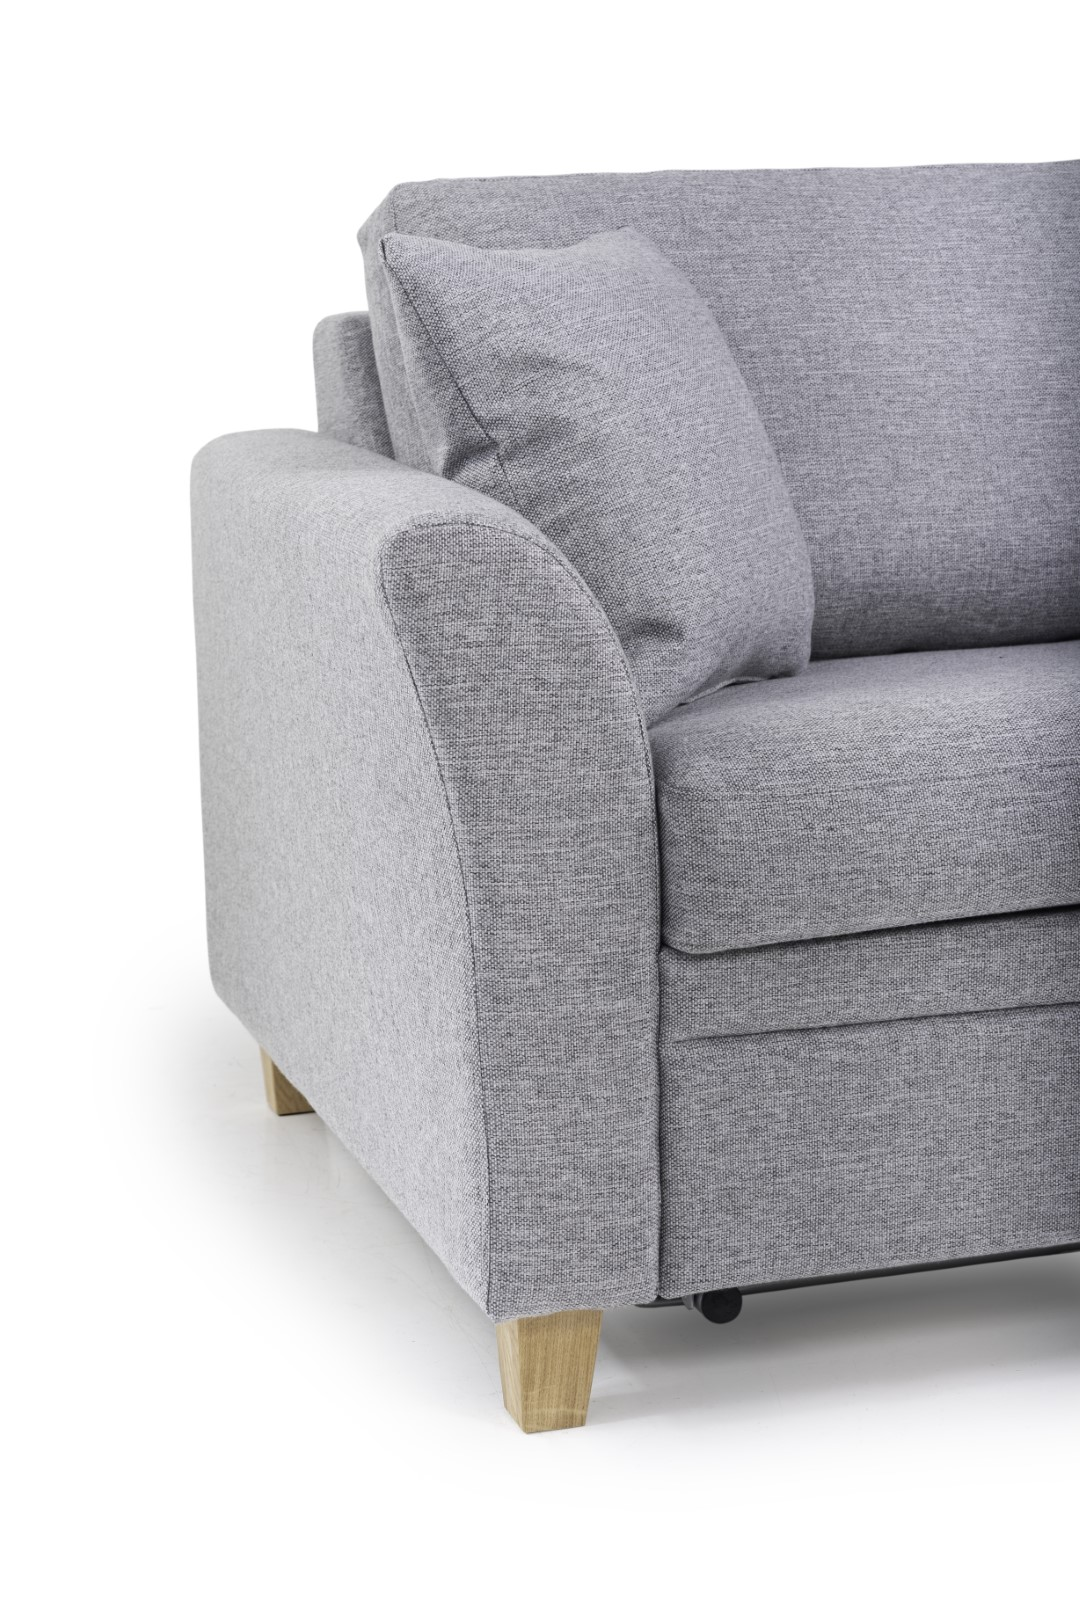 Grey Sofas Uk Next Tyne Arm Leg Lindt 3 2 Dark Grey Sofa Scandinavian Style